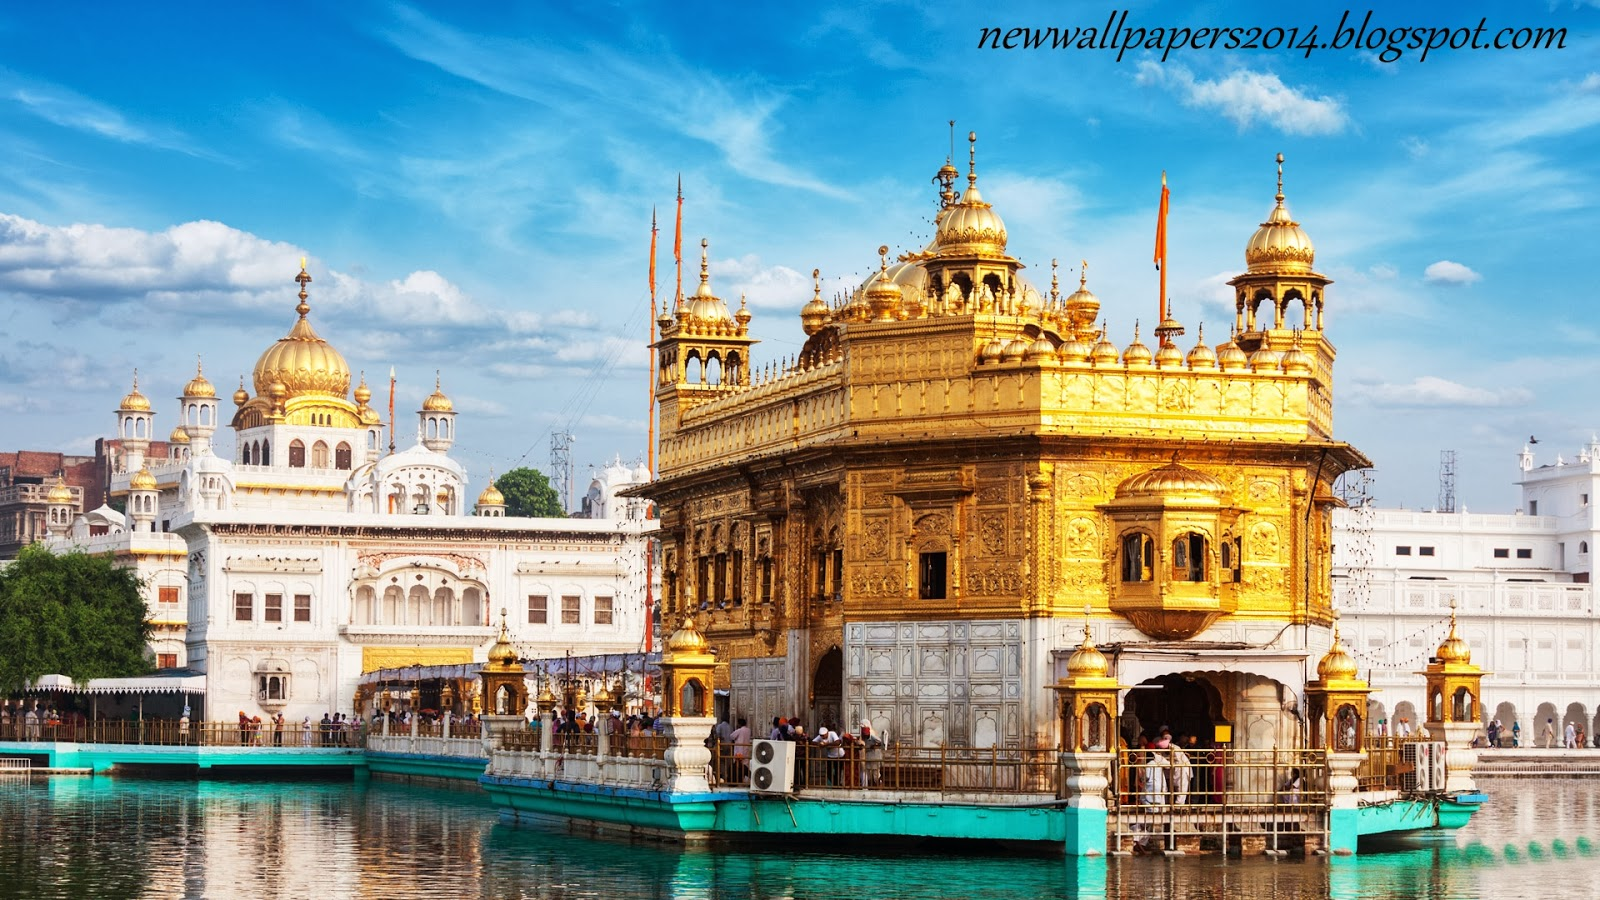 The Golden Temple - Harmandir sahib hd wallpapers 2014 ...